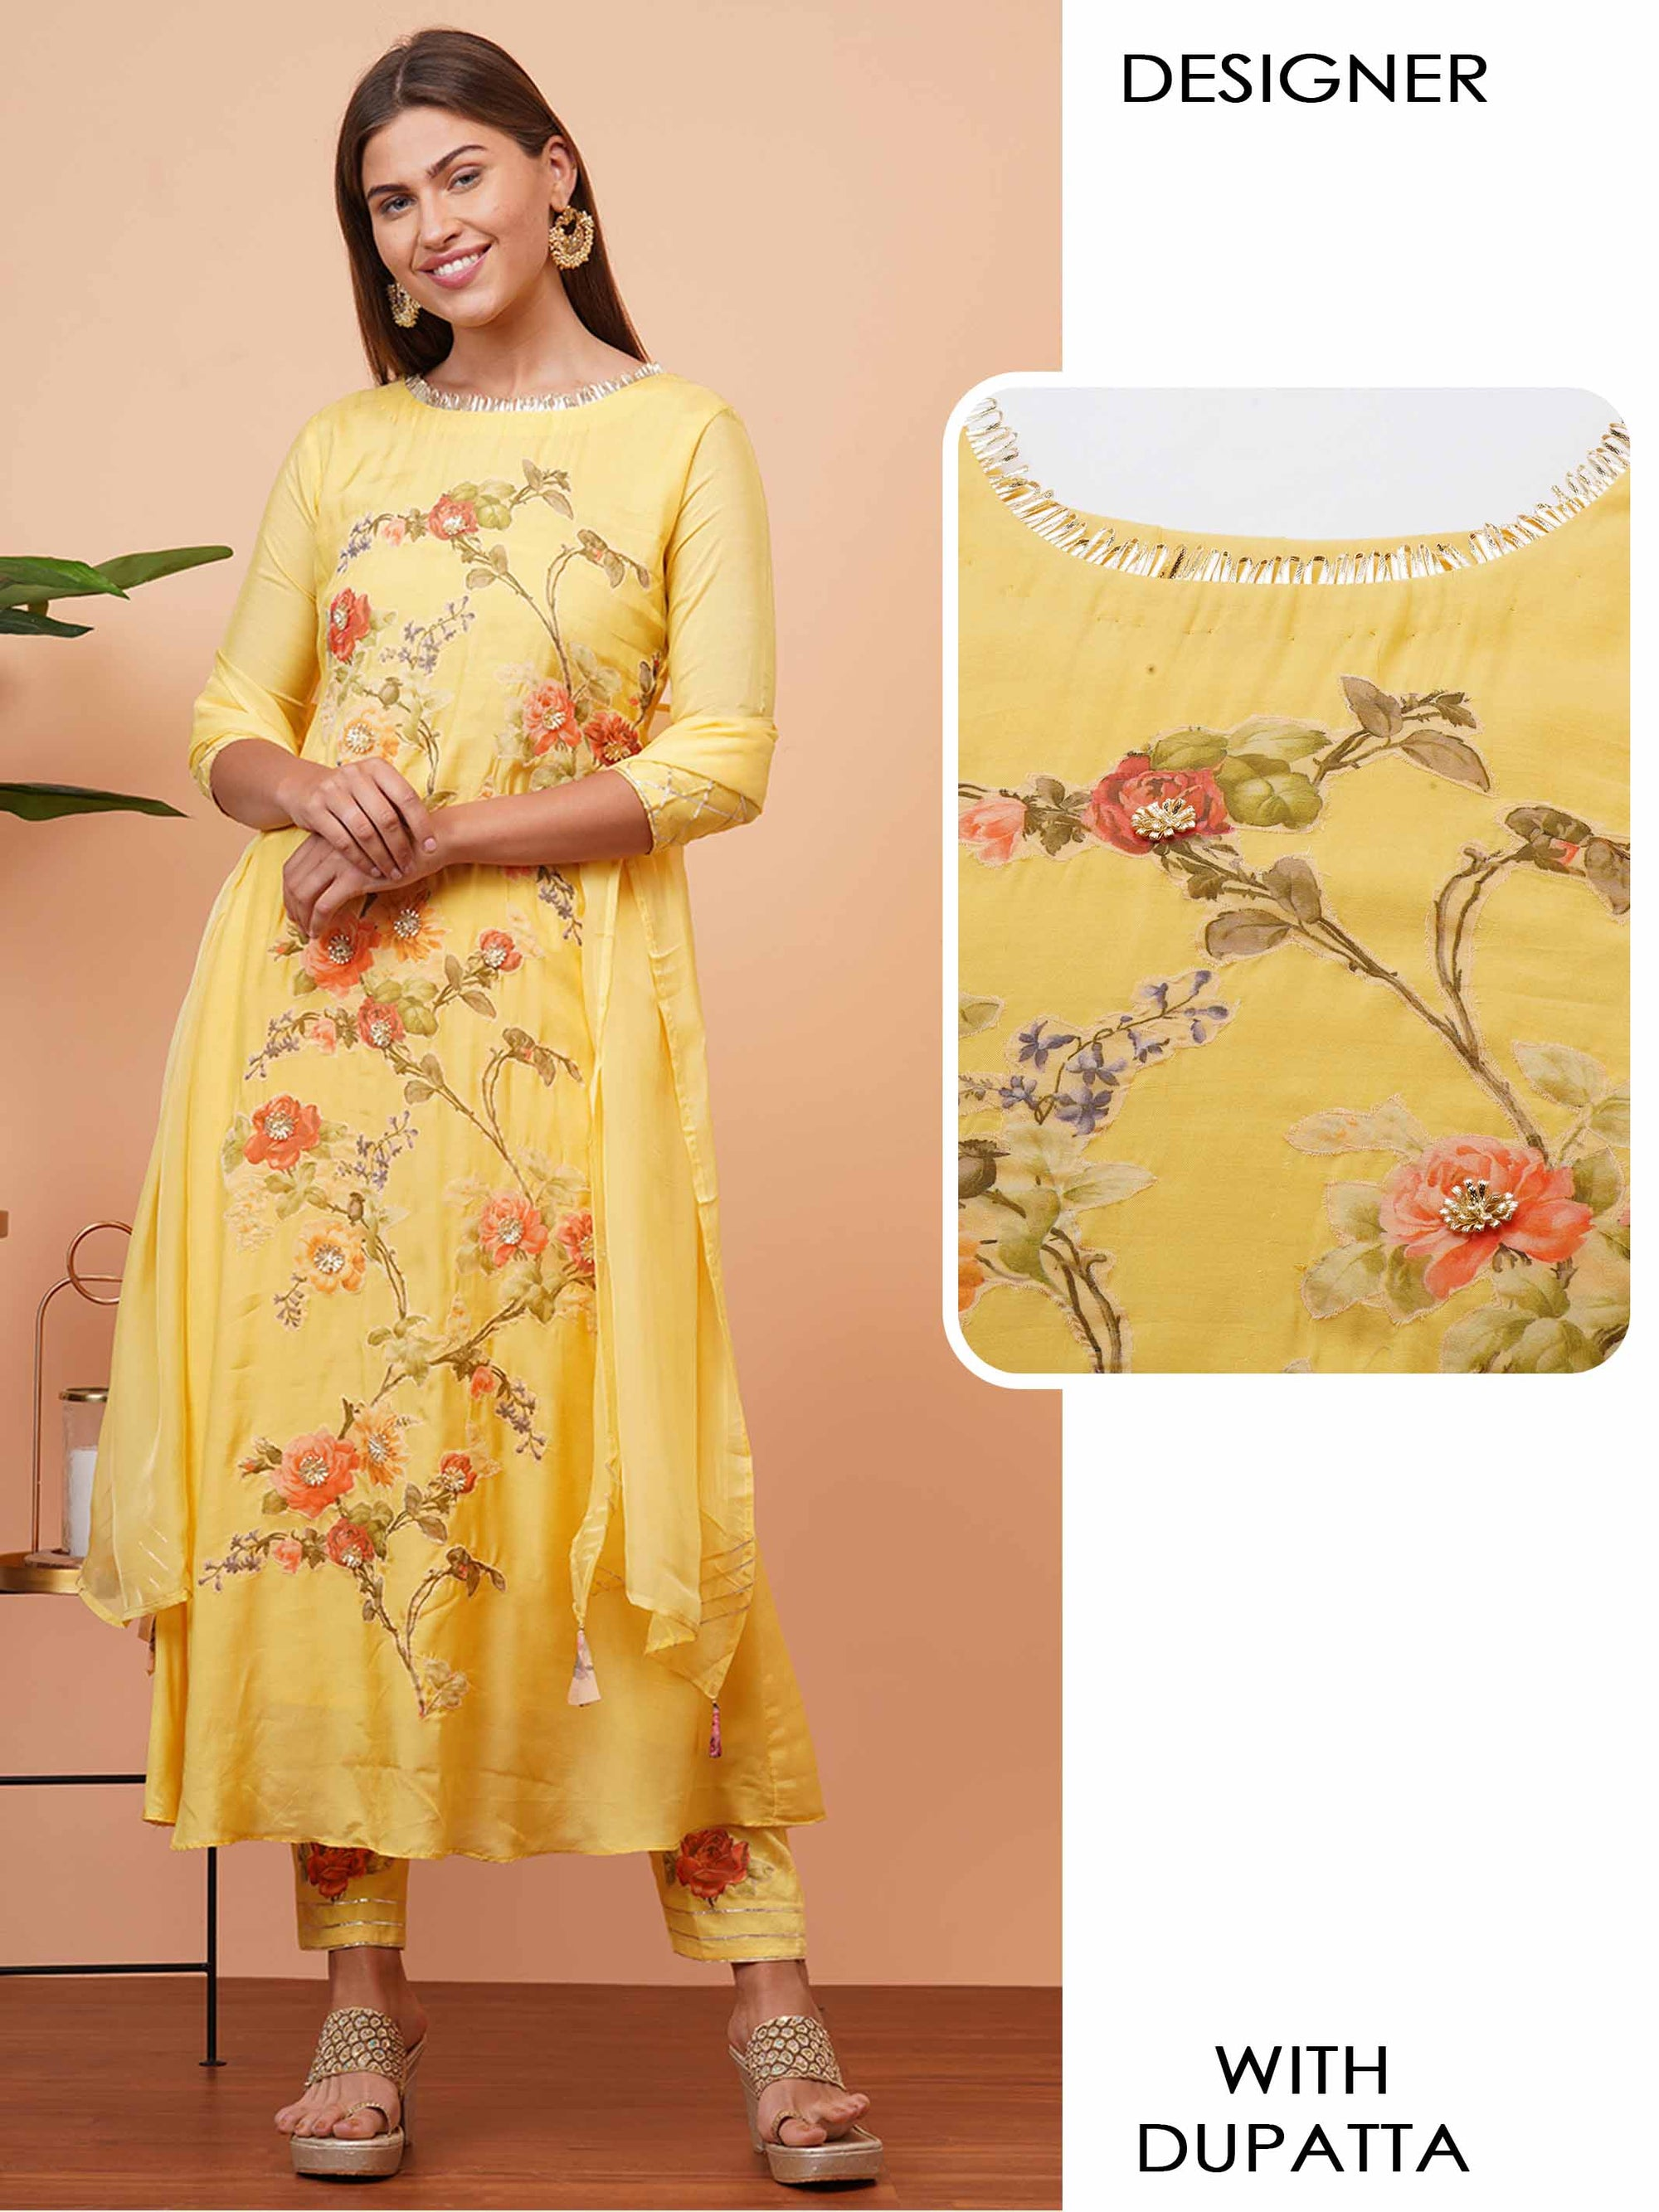 Floral Applique & Gota Embellished Kurta with Gota Embroidered Dupatta - Yellow